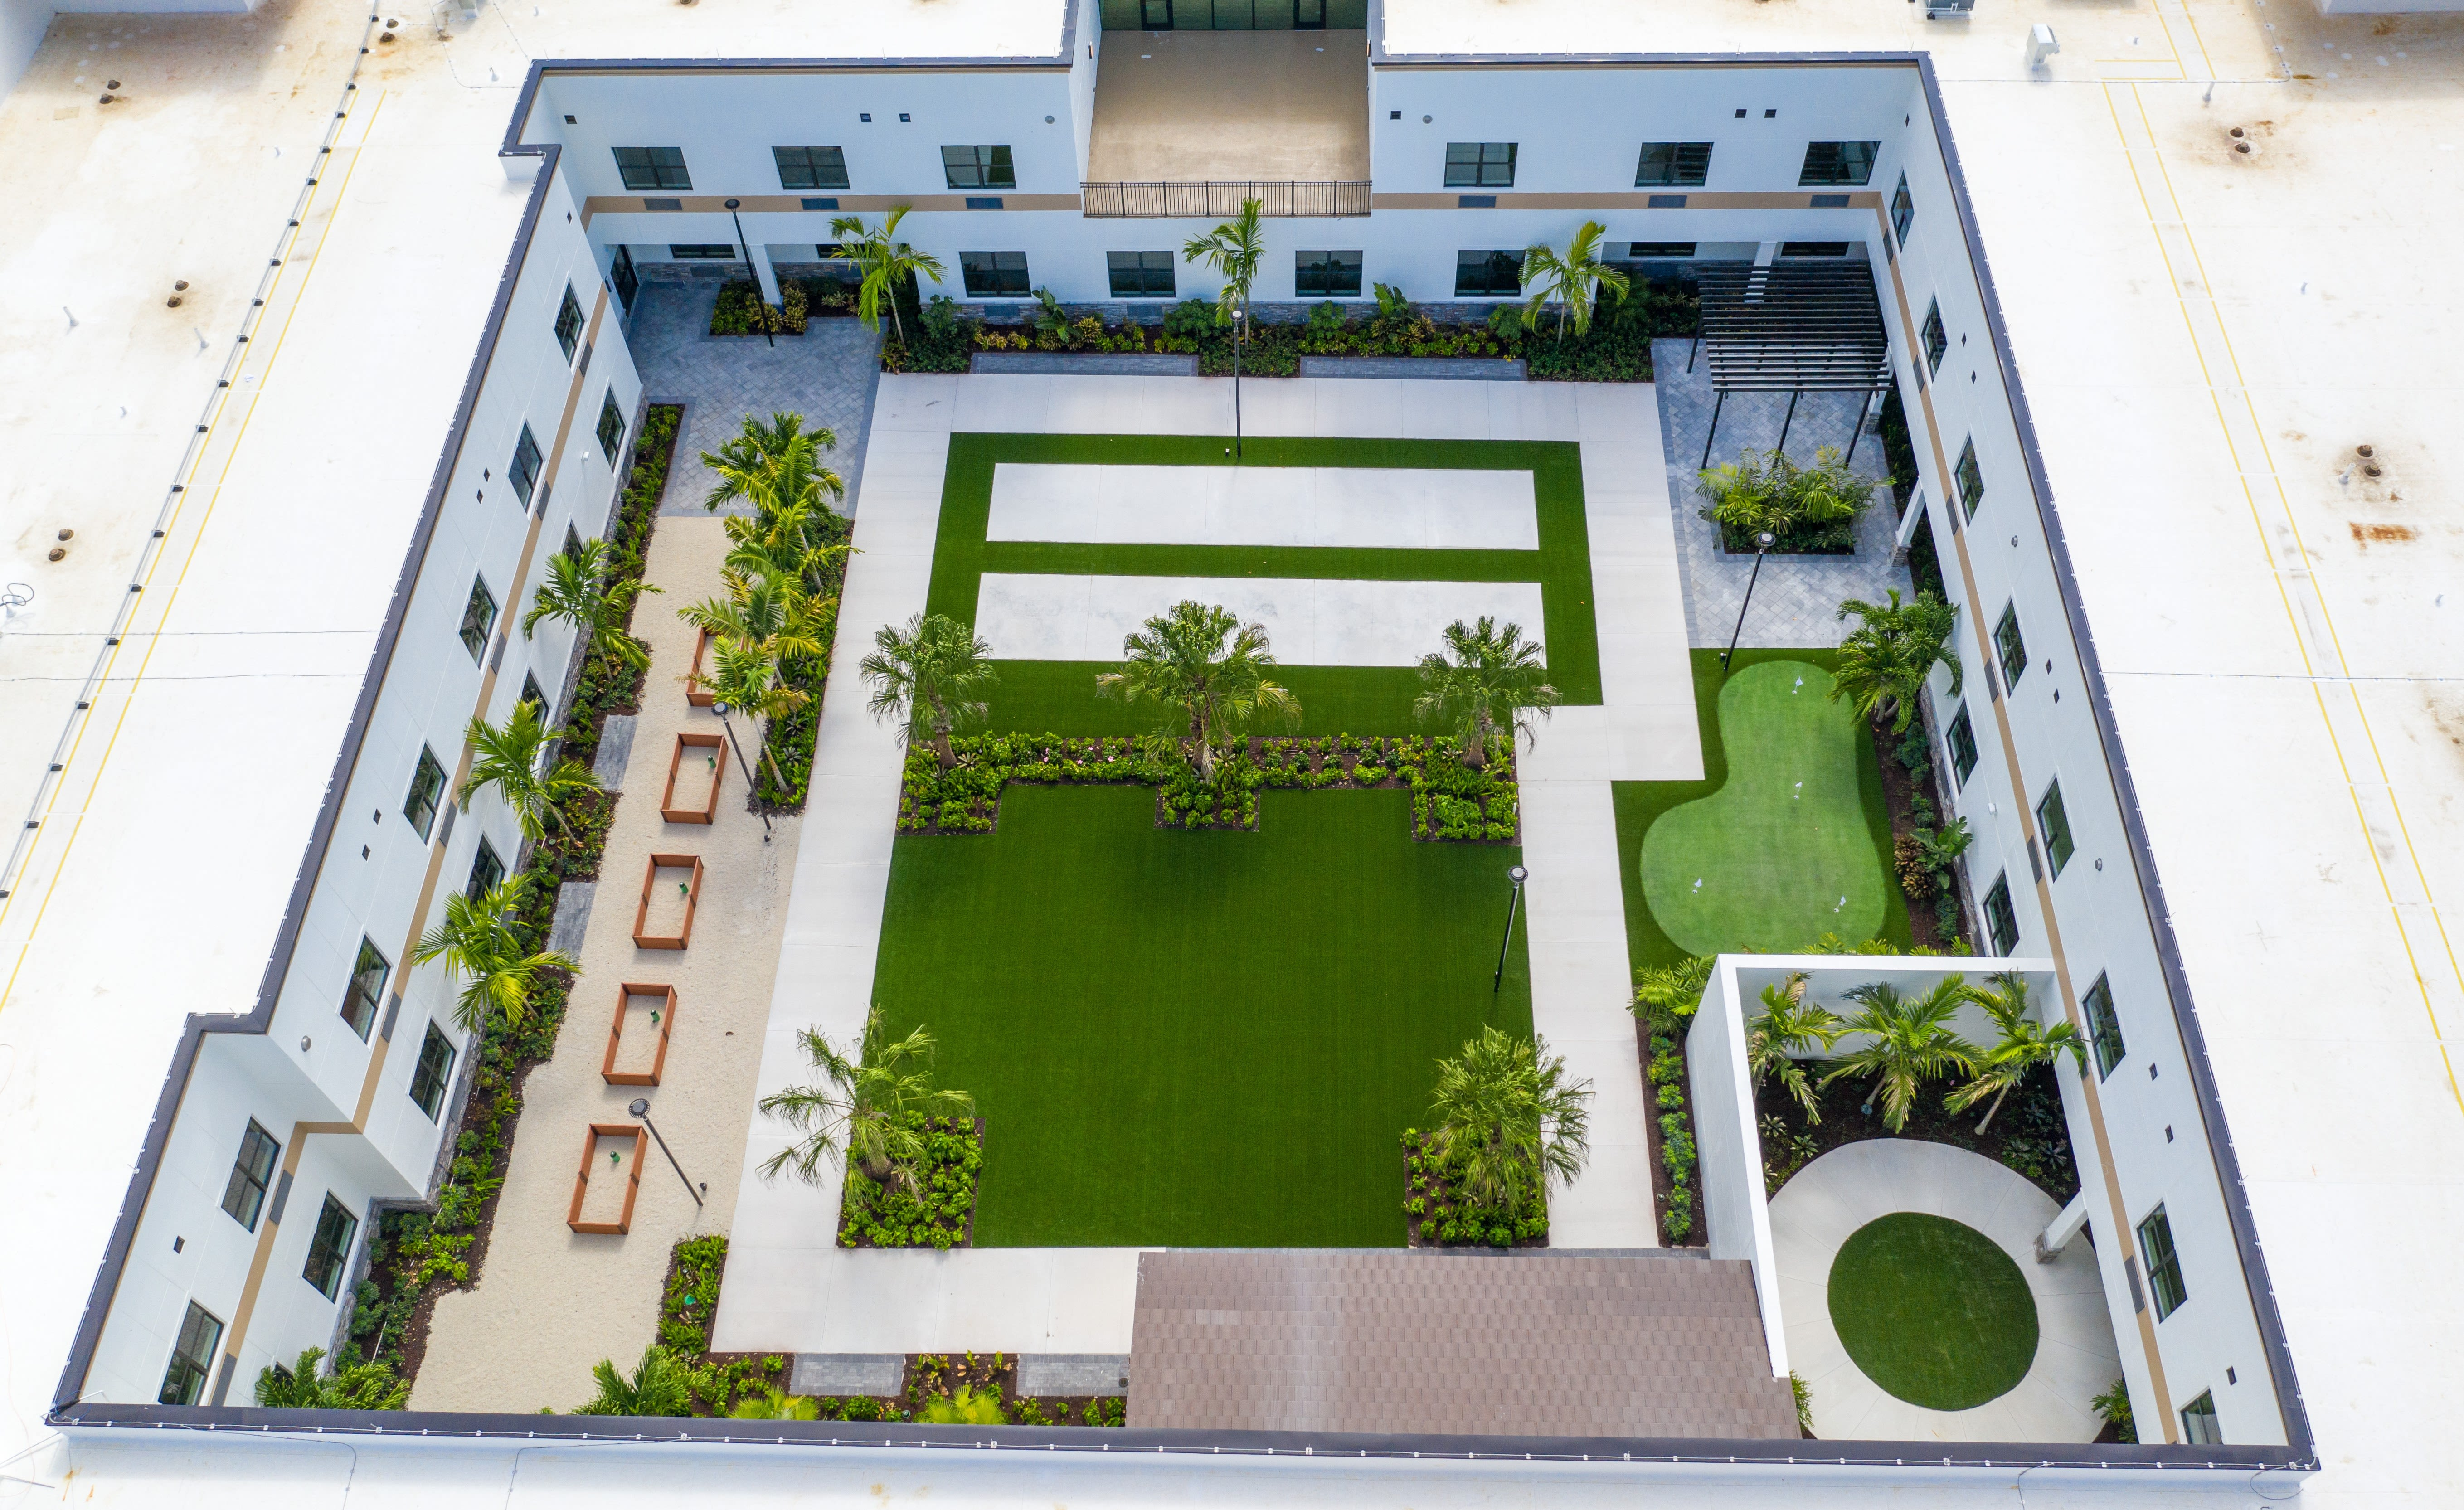 Overhead angle of courtyard and amenities at Inspired Living Royal Palm Beach in Royal Palm Beach, Florida.